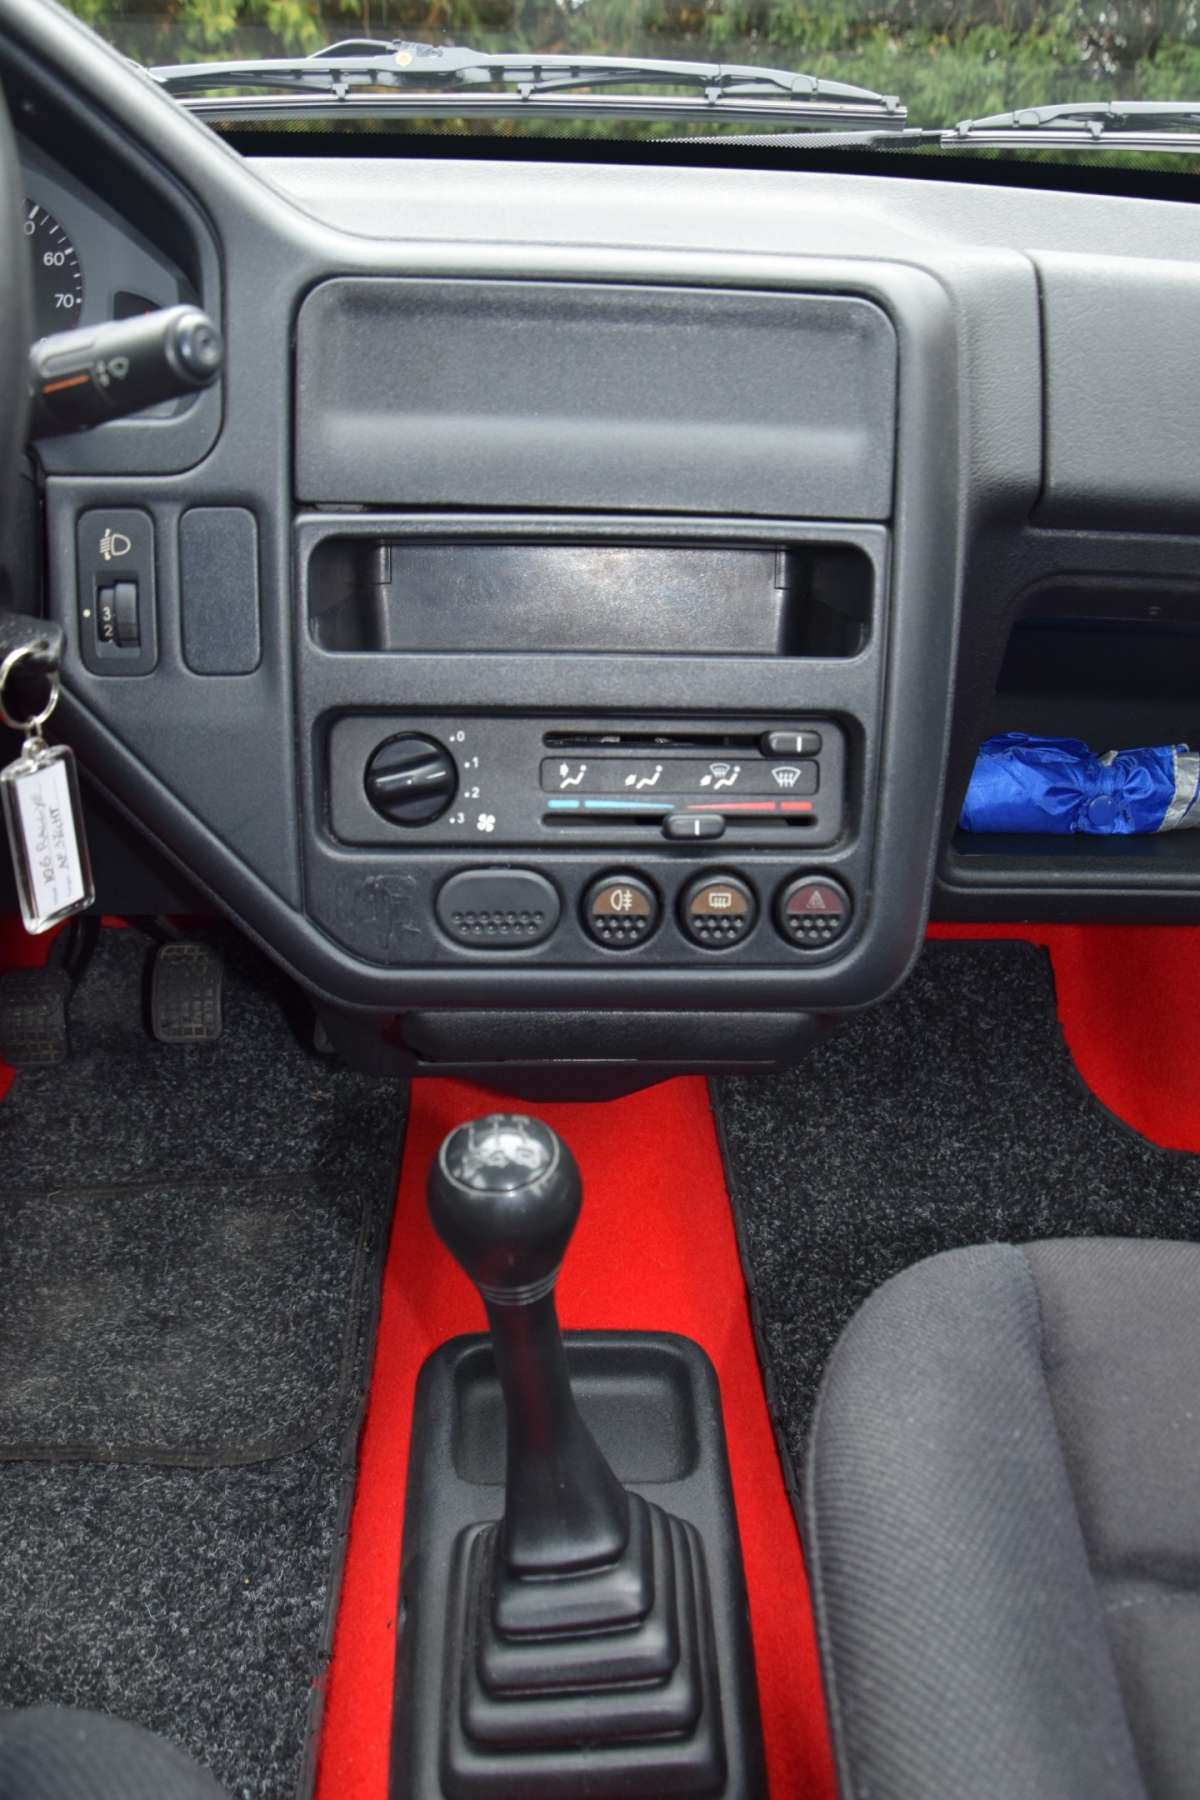 Peugeot 106 Rallye consolle centrale